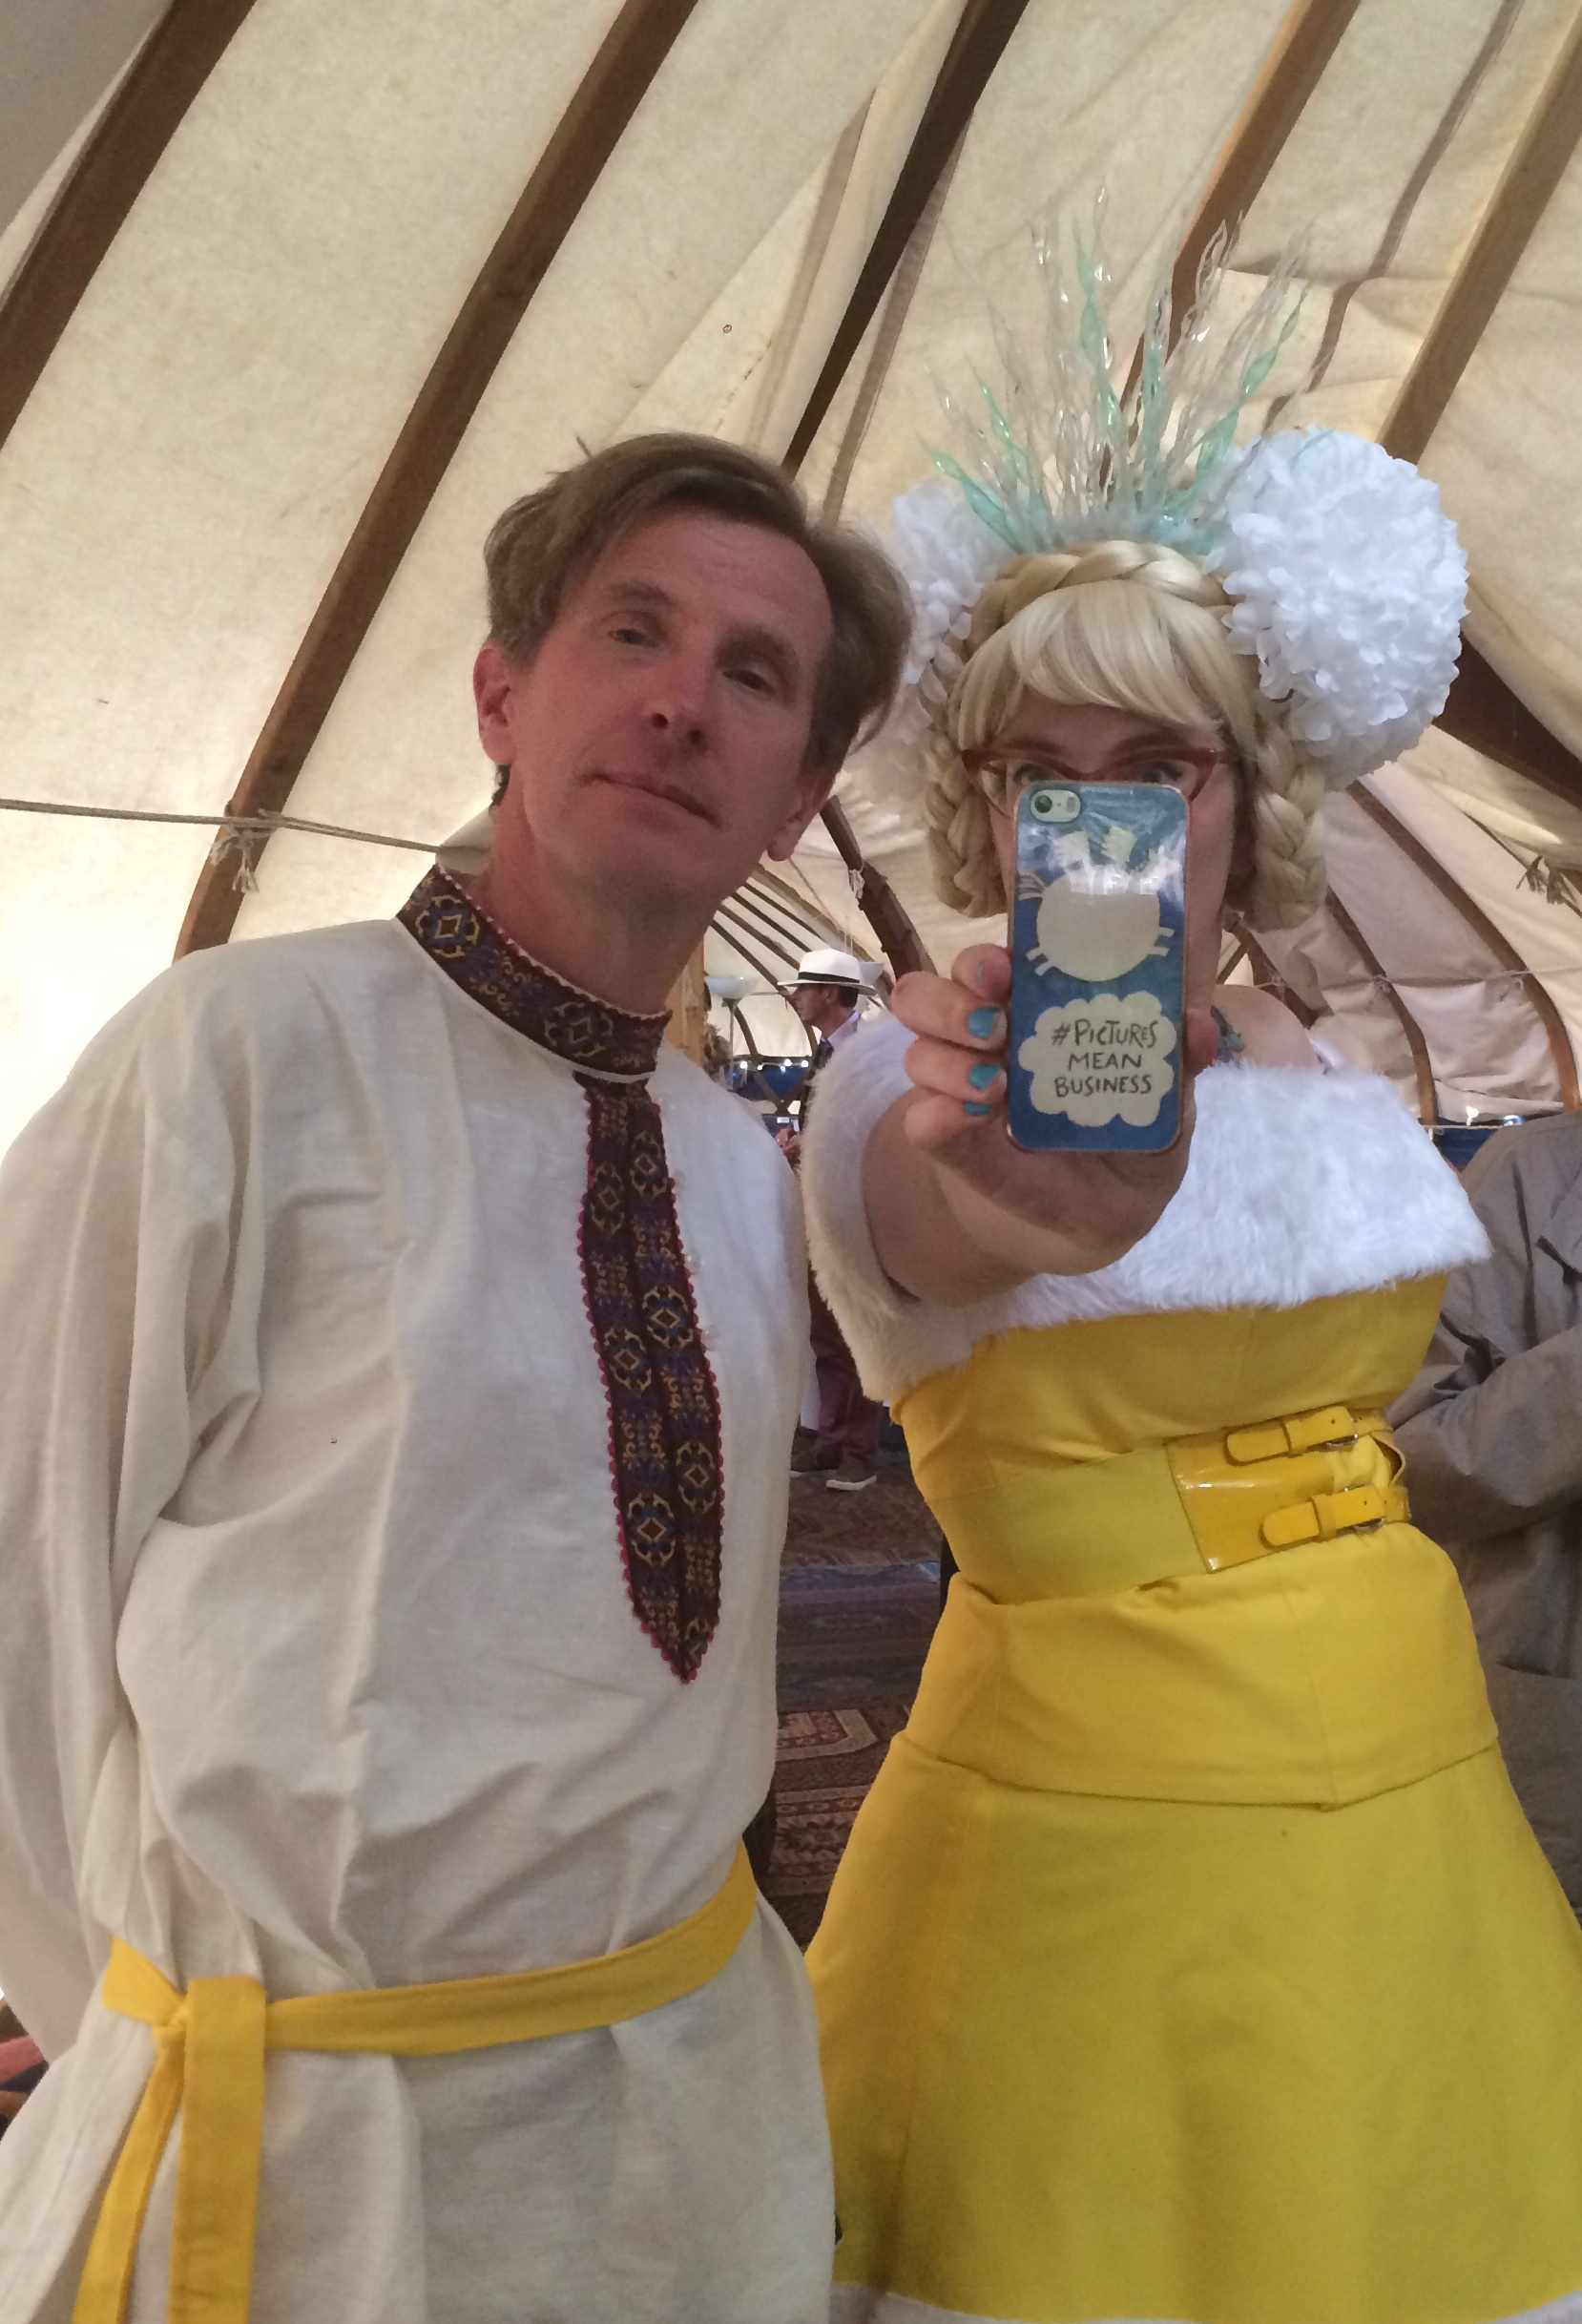 In the yurt with the dynamic duo, Philip Reeve and Sarah McIntyre